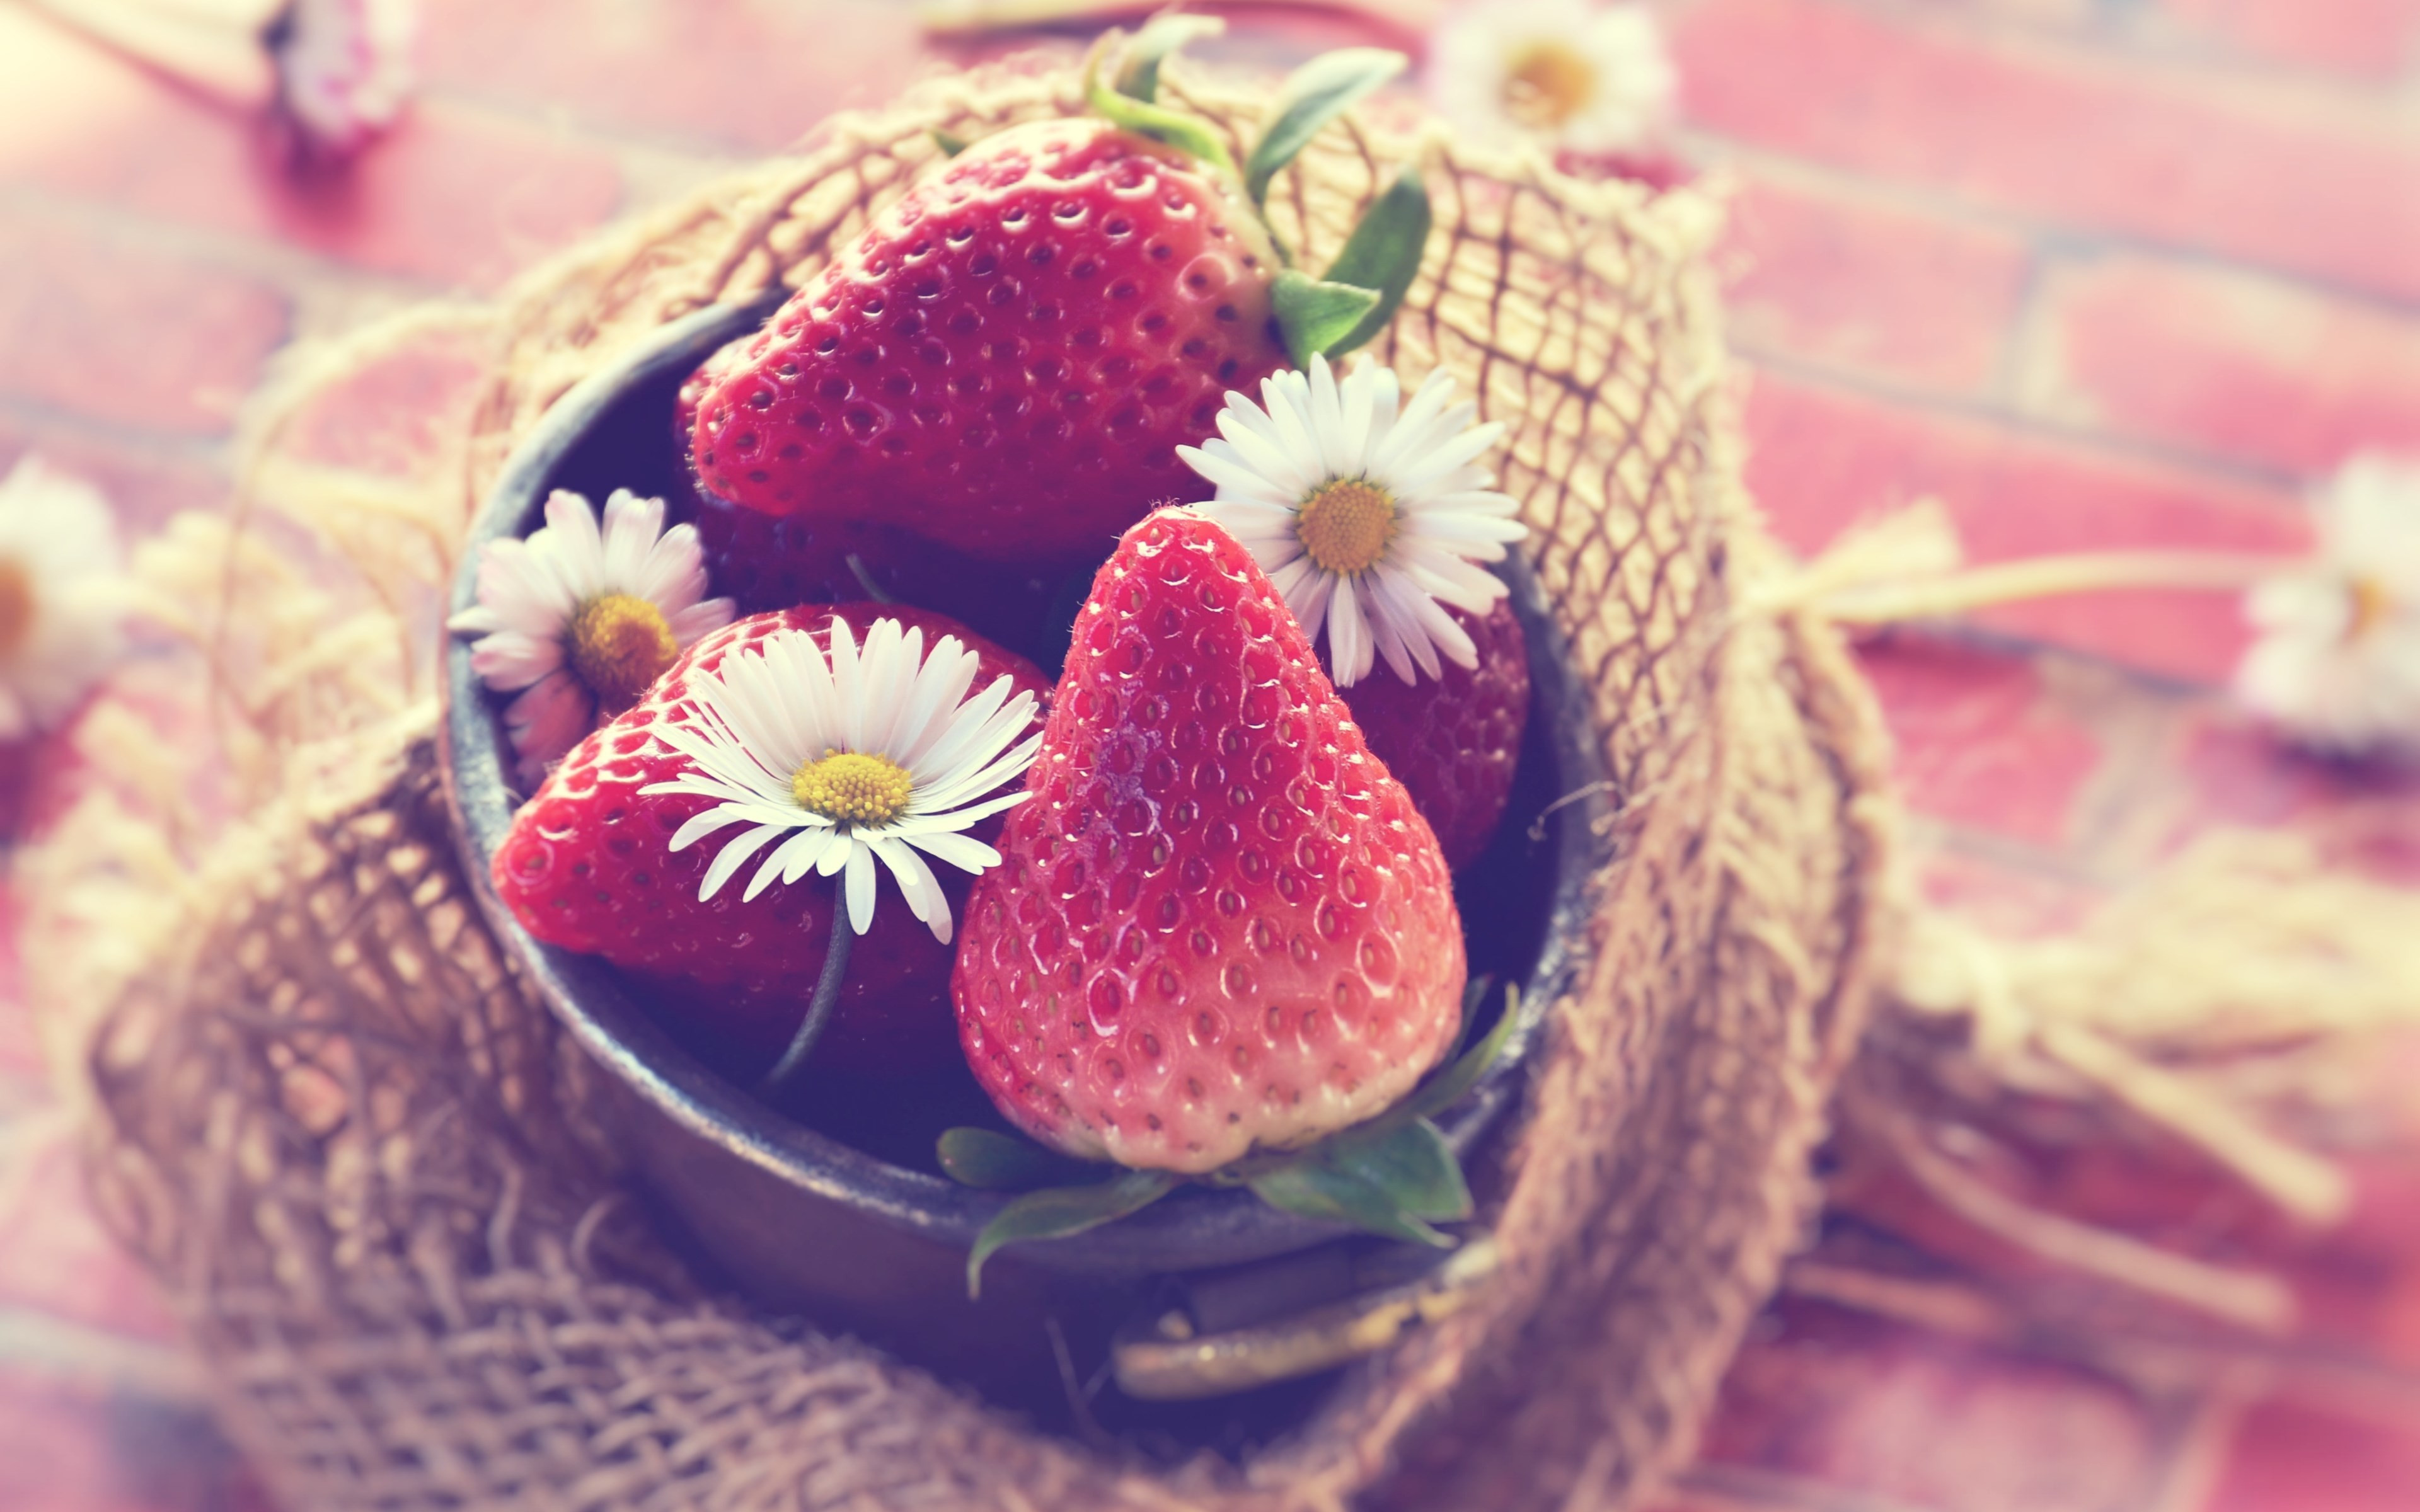 Tasty strawberries wallpaper 3840x2400